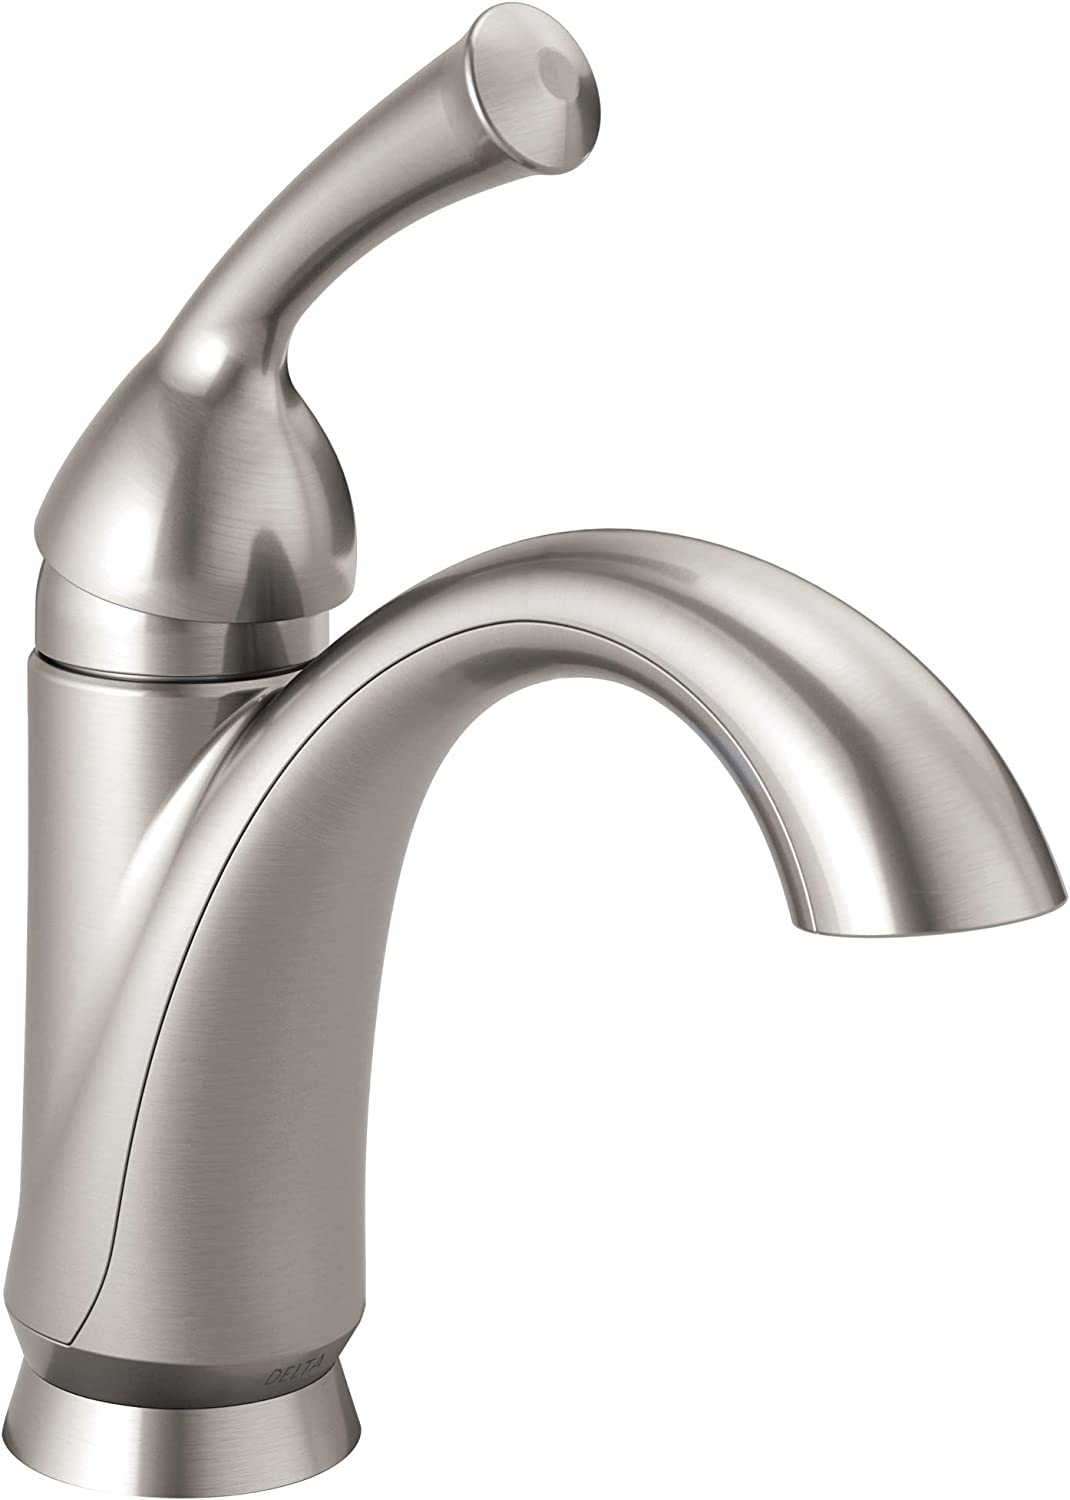 delta faucet haywood single hole bathroom faucet brushed nickel single handle bathroom faucet diamond seal technology drain assembly stainless